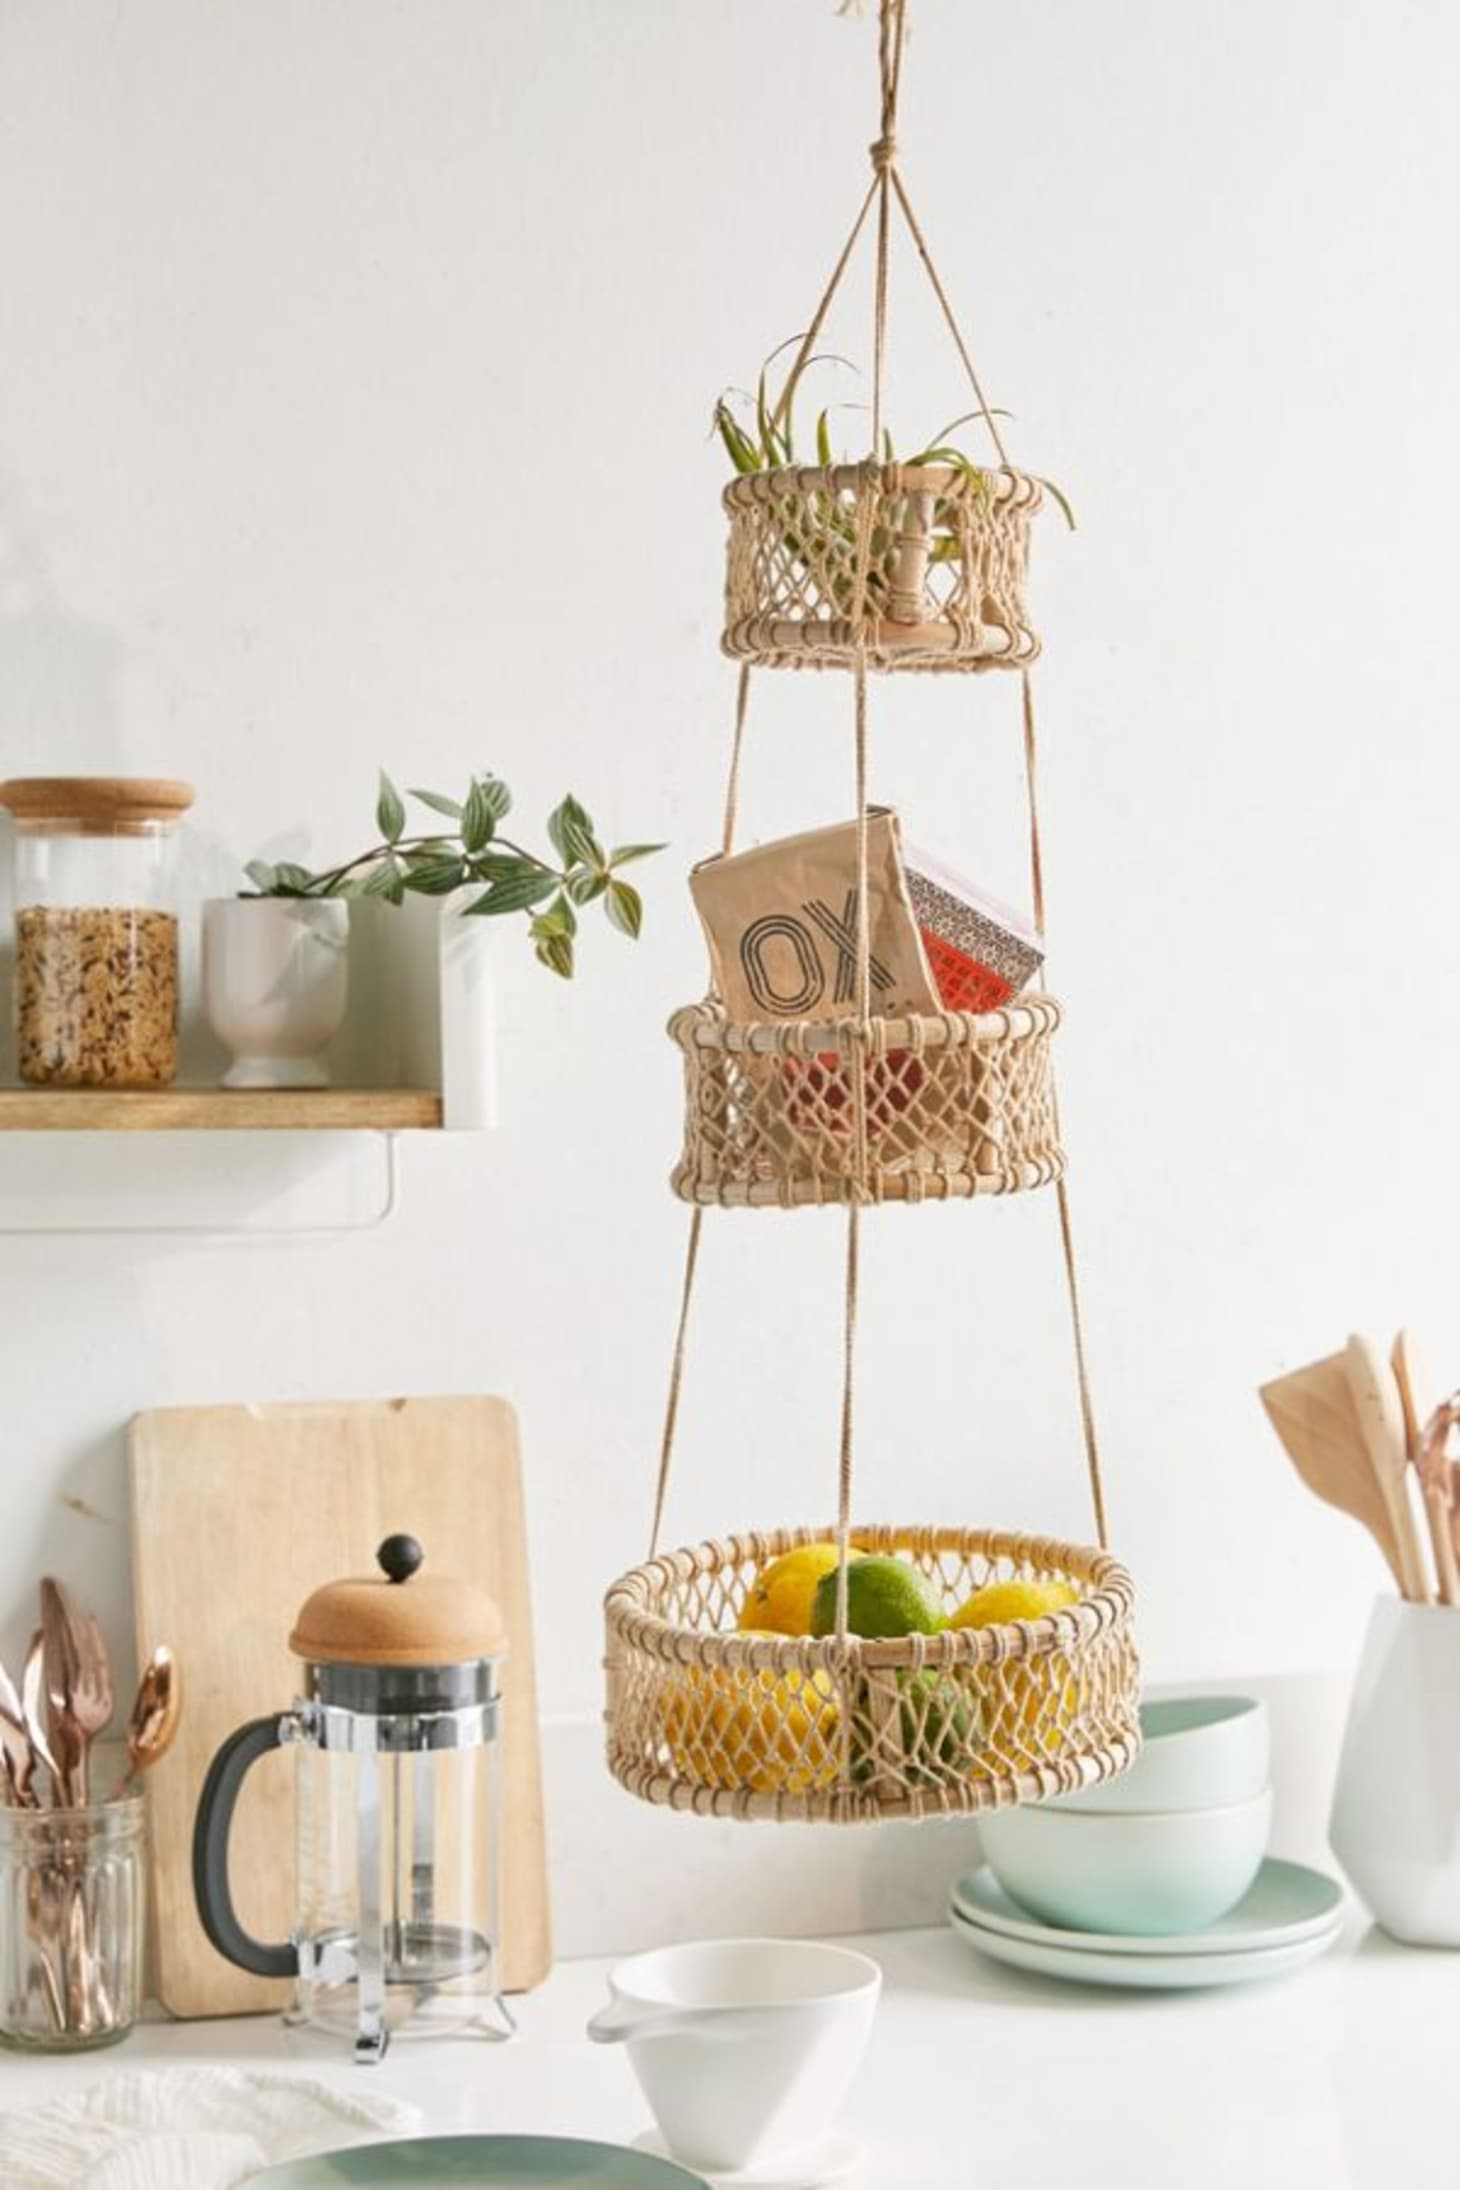 Hanging Fruit Baskets - Kitchen Decor | Kitchn